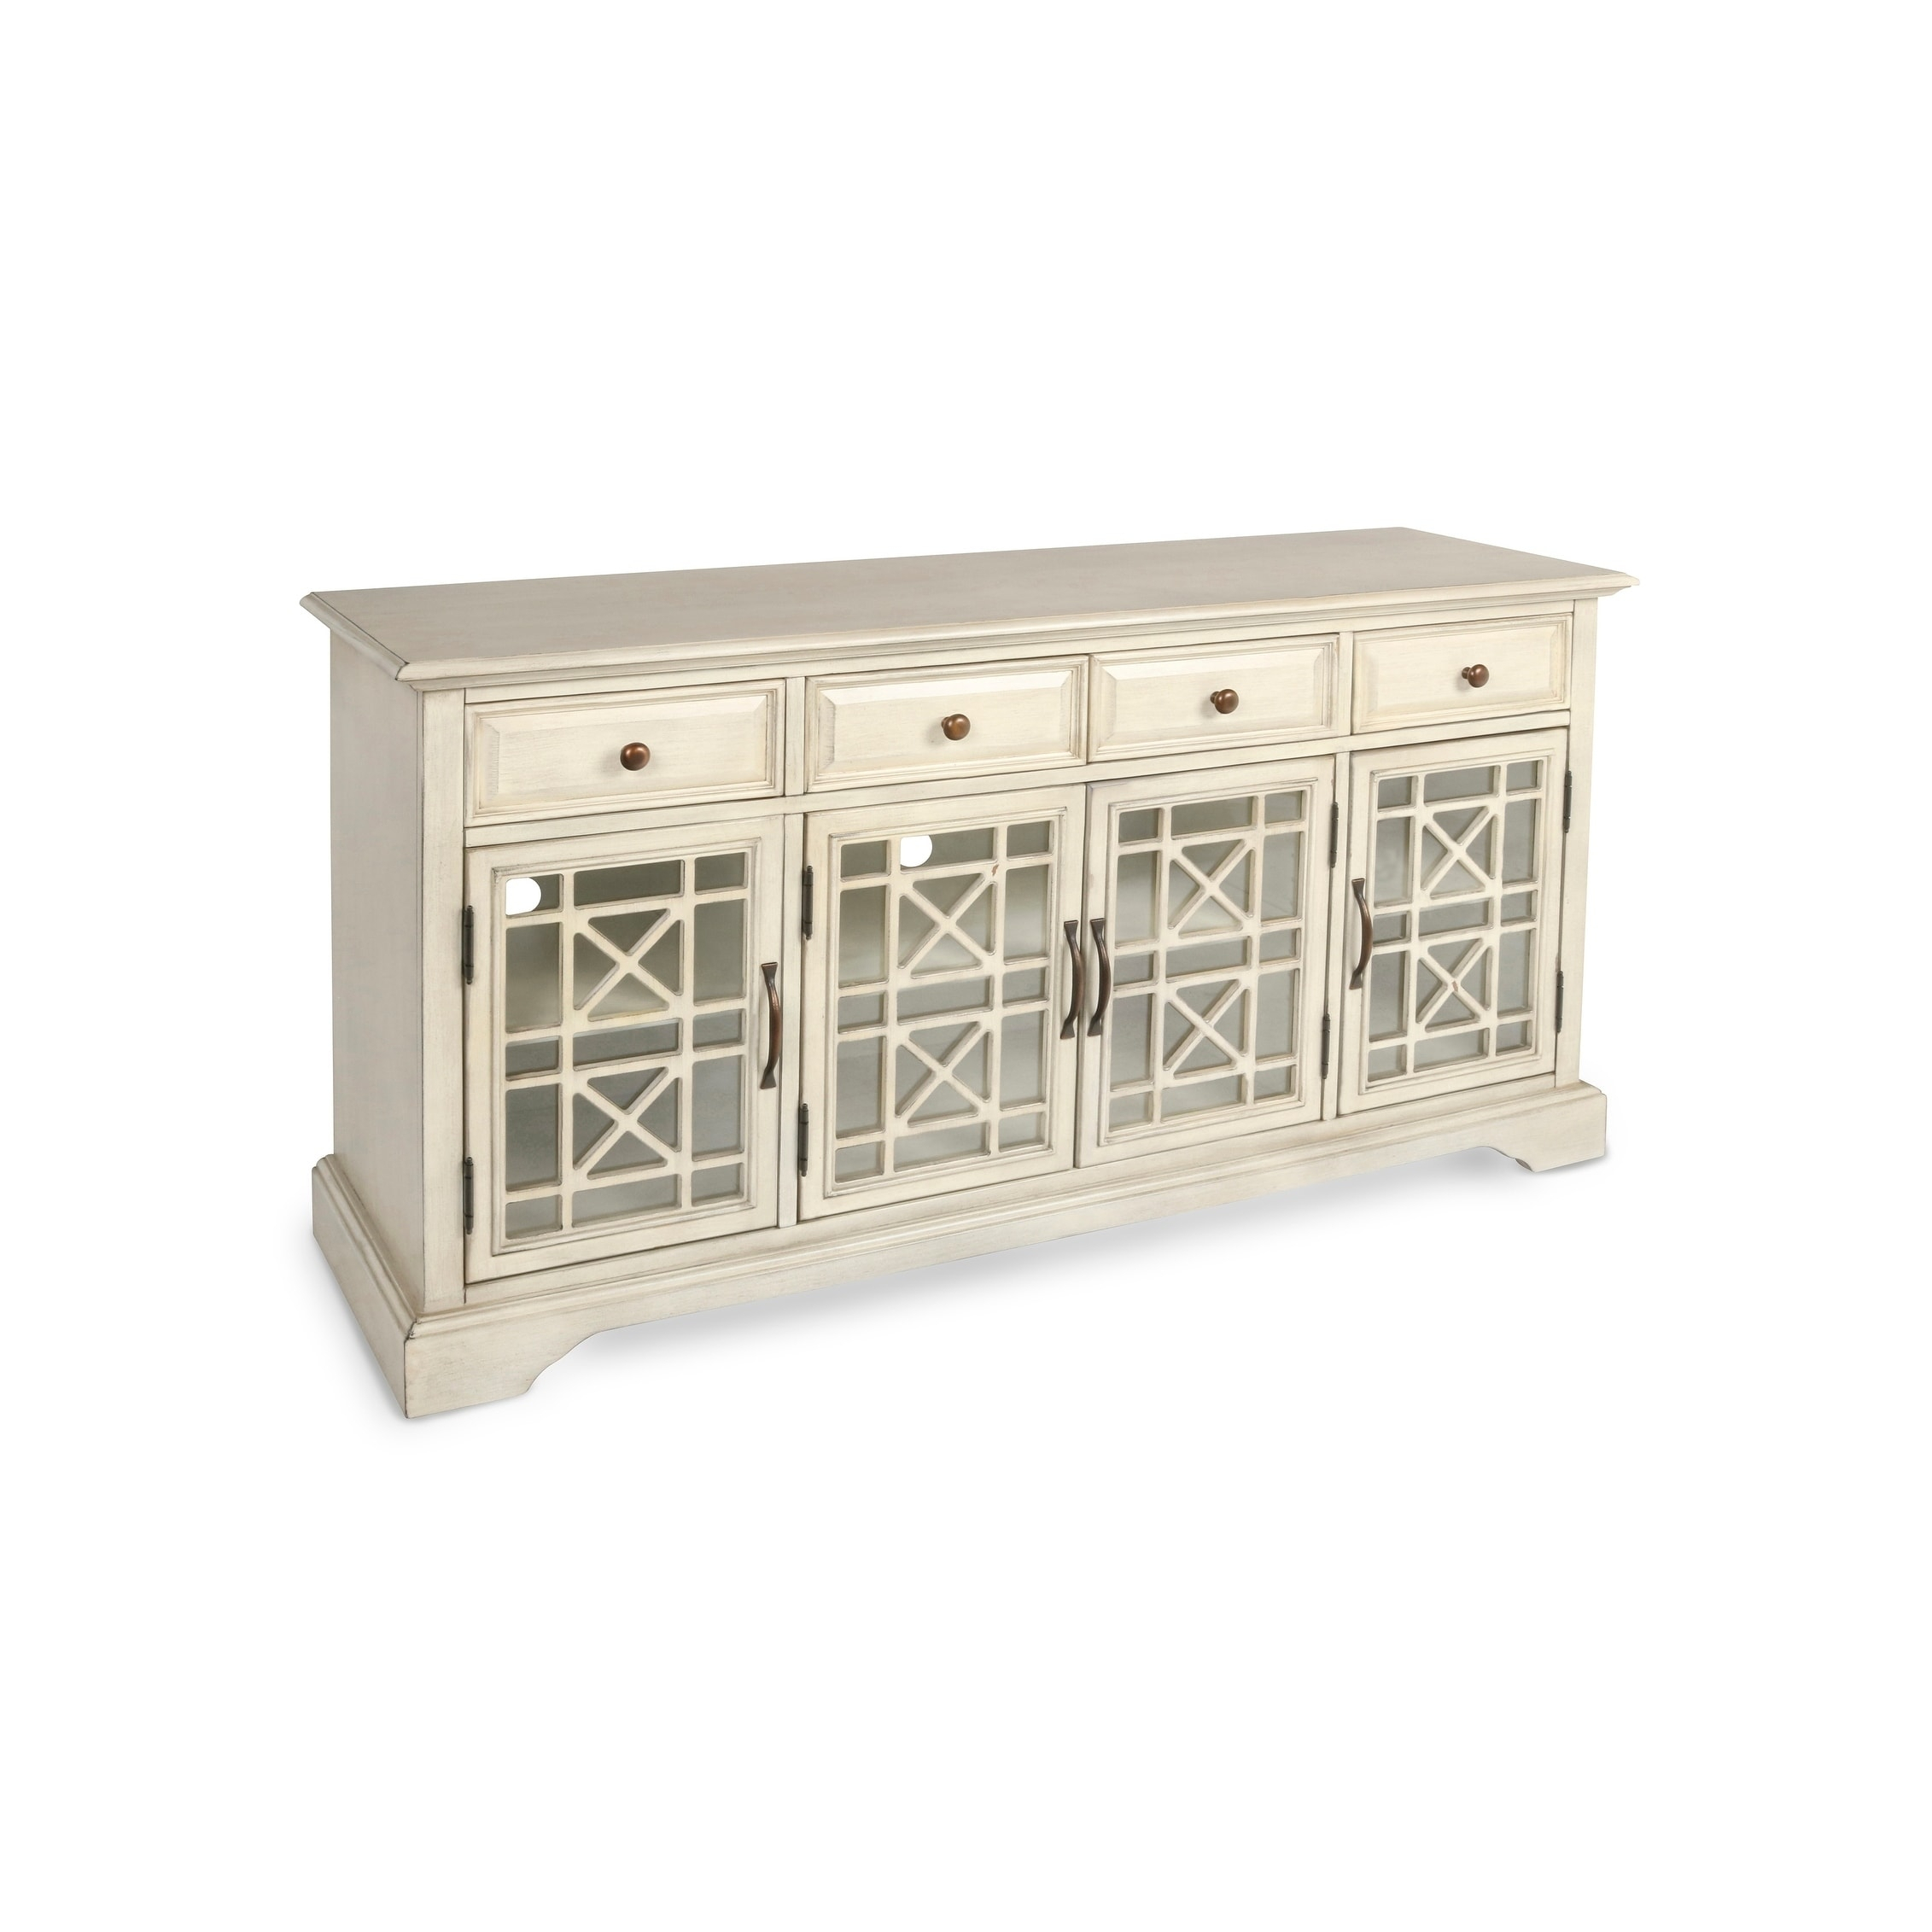 Gilbert Antique White 4 Drawer 4 Door Accent Credenza, Clear Intended For Cambrai Sideboards (View 12 of 30)